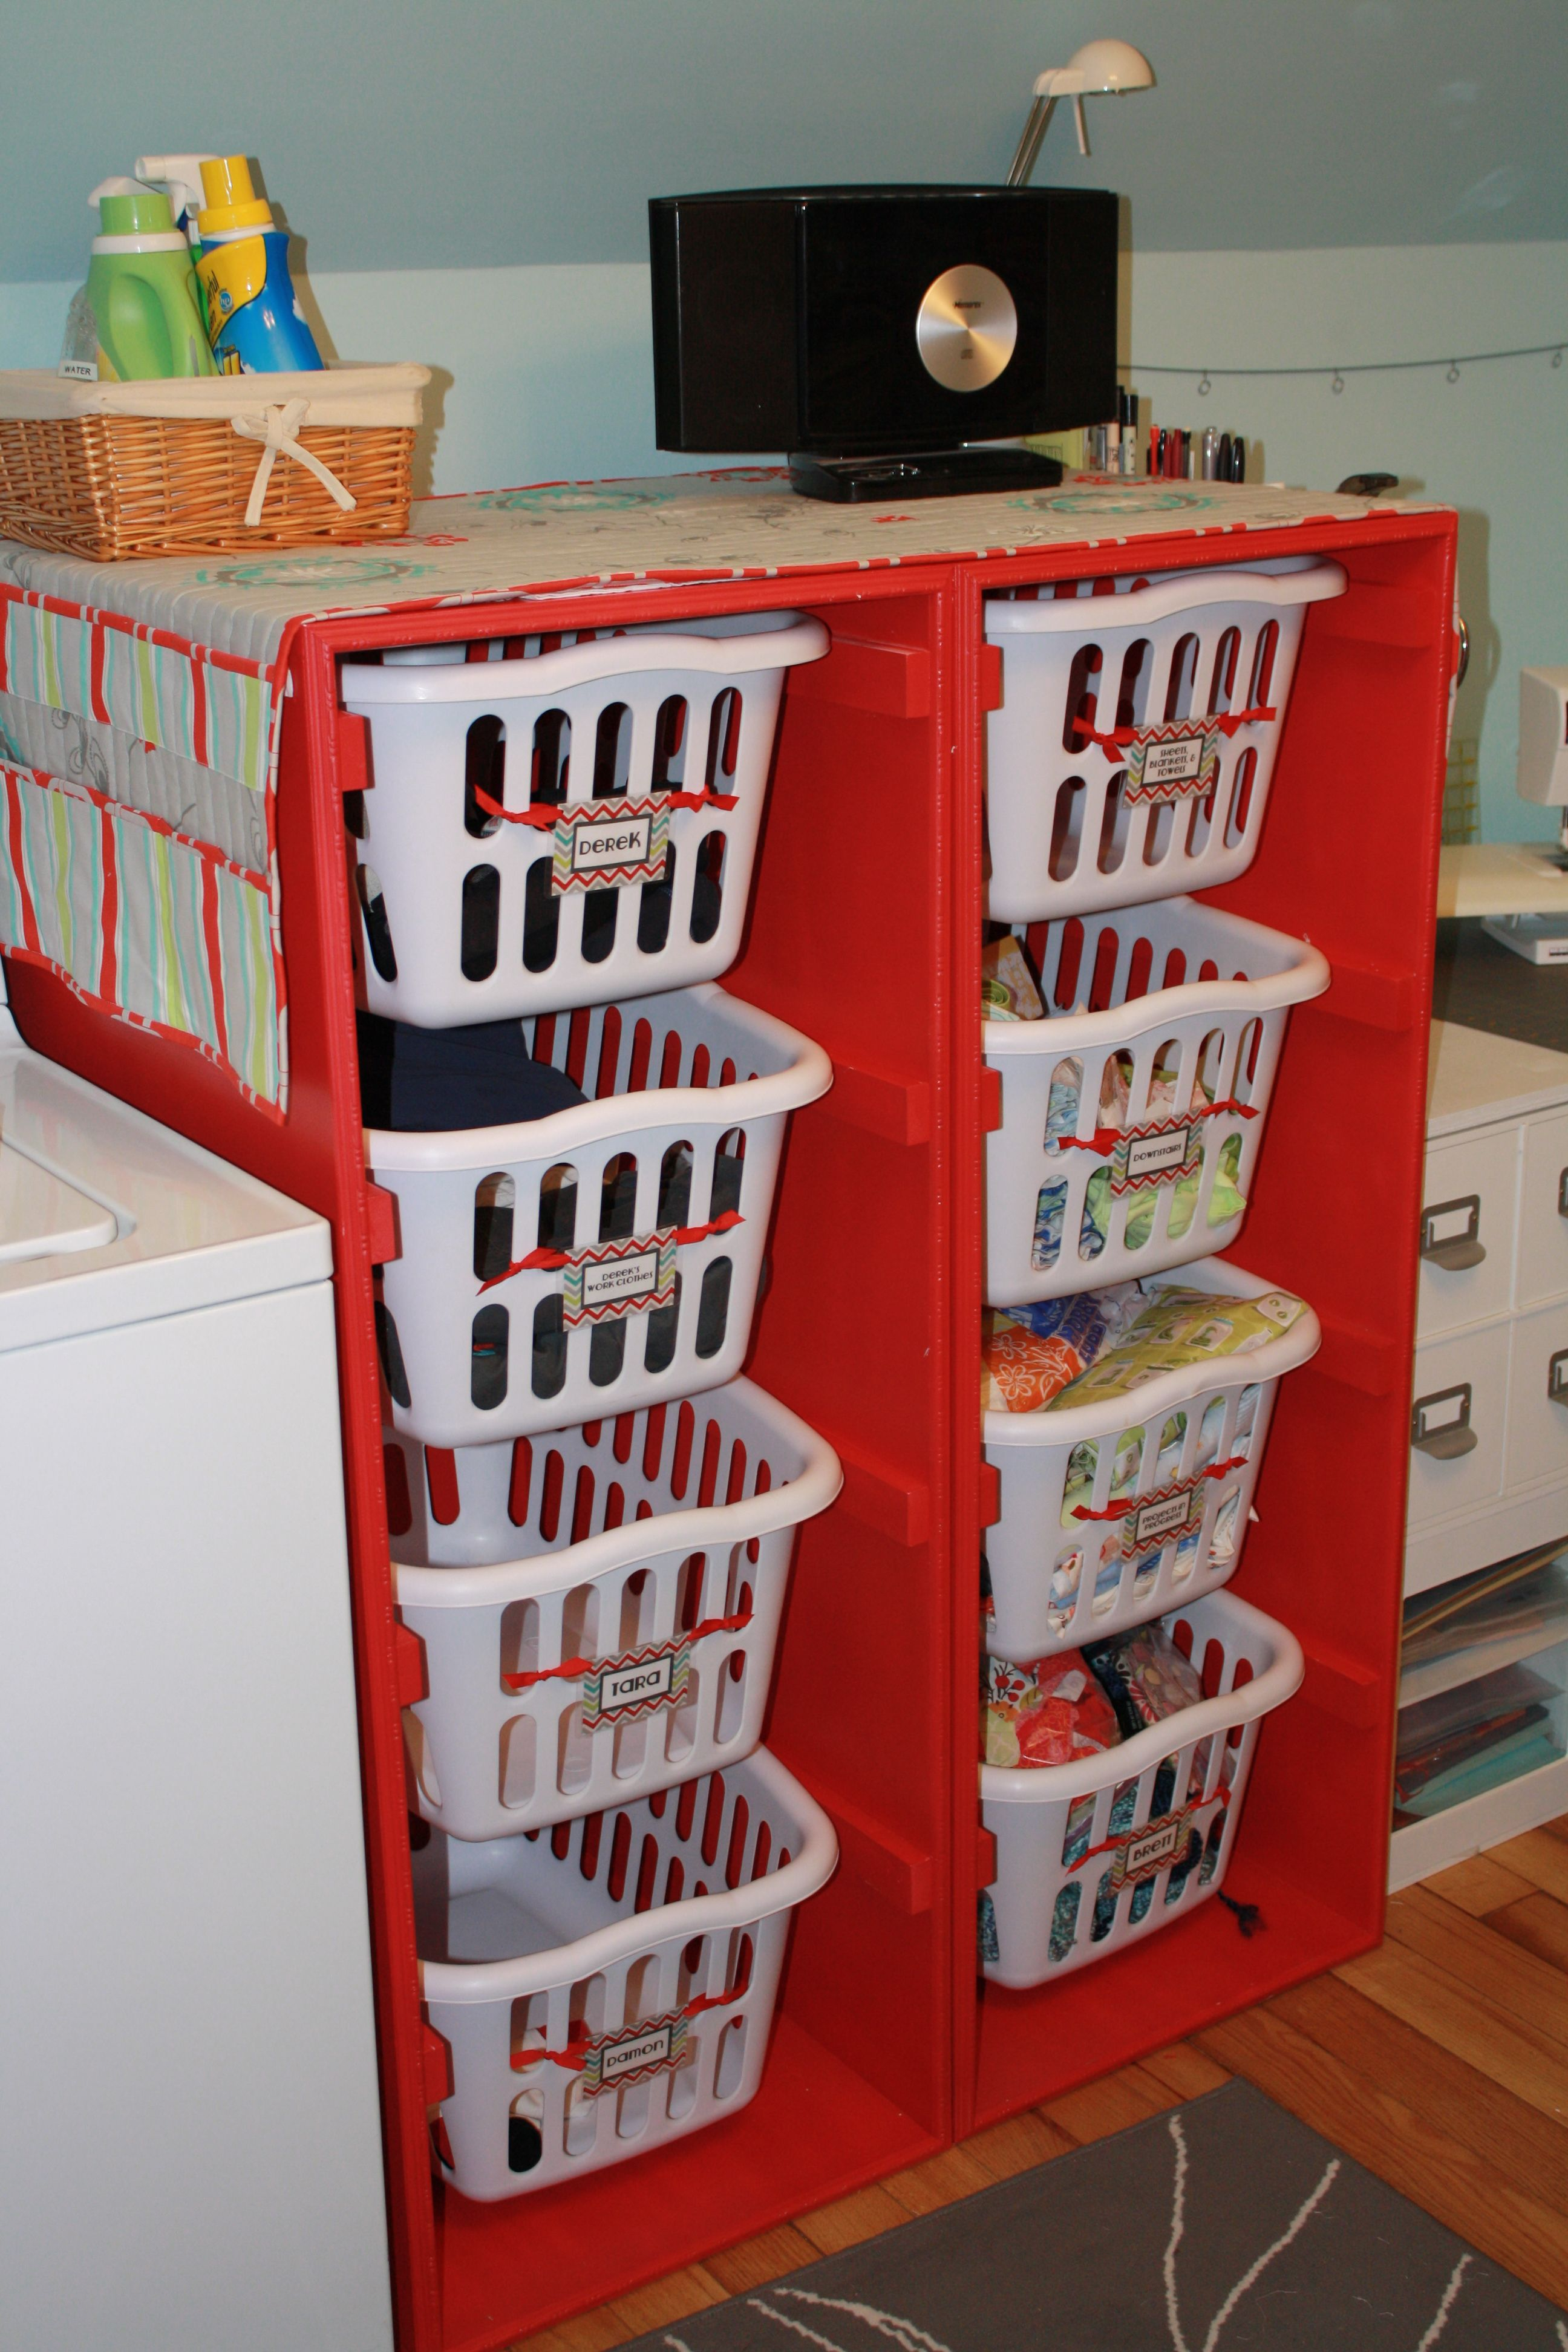 Laundry basket dressers 4 tall do it yourself home projects from laundry basket dressers 4 tall do it yourself home projects from ana white solutioingenieria Image collections